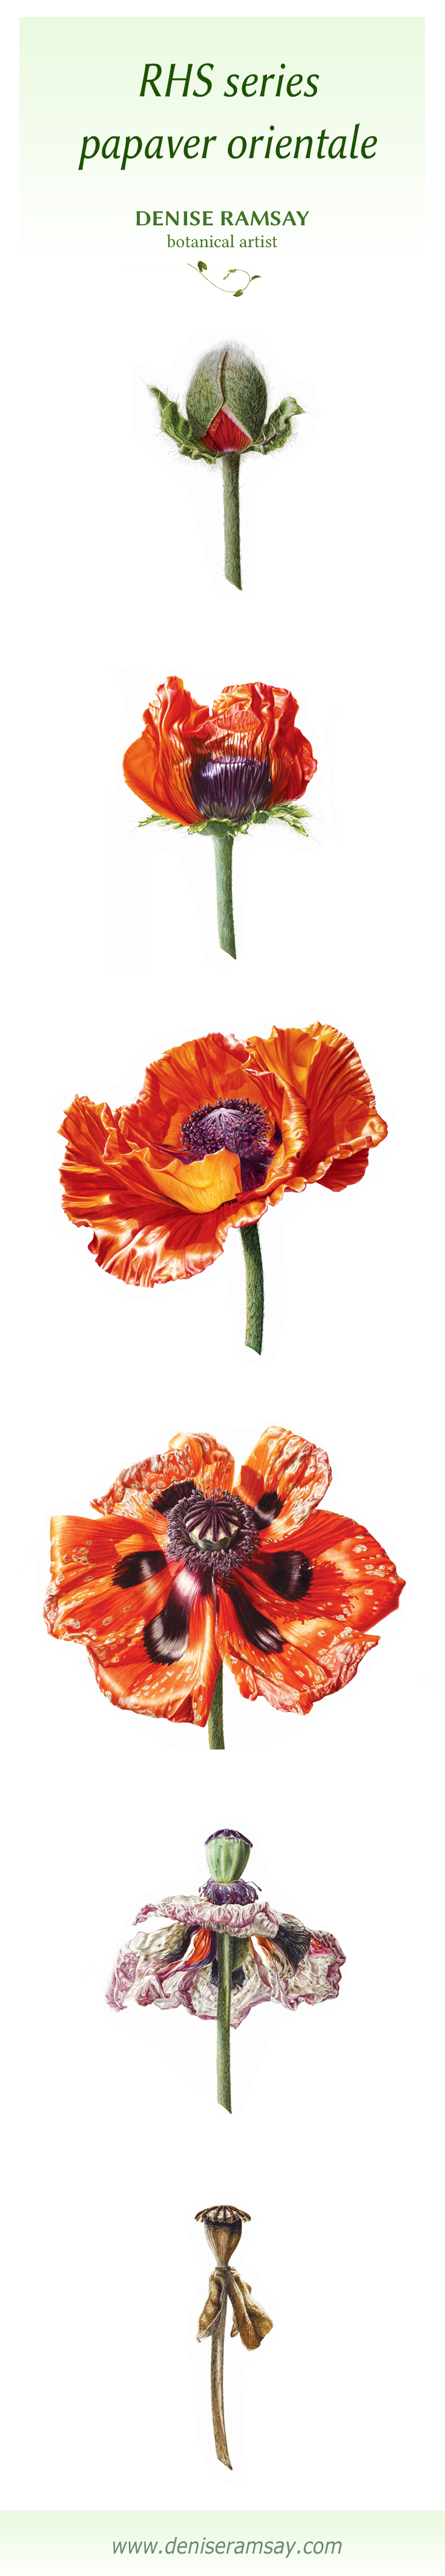 full series poppy vertical.jpg